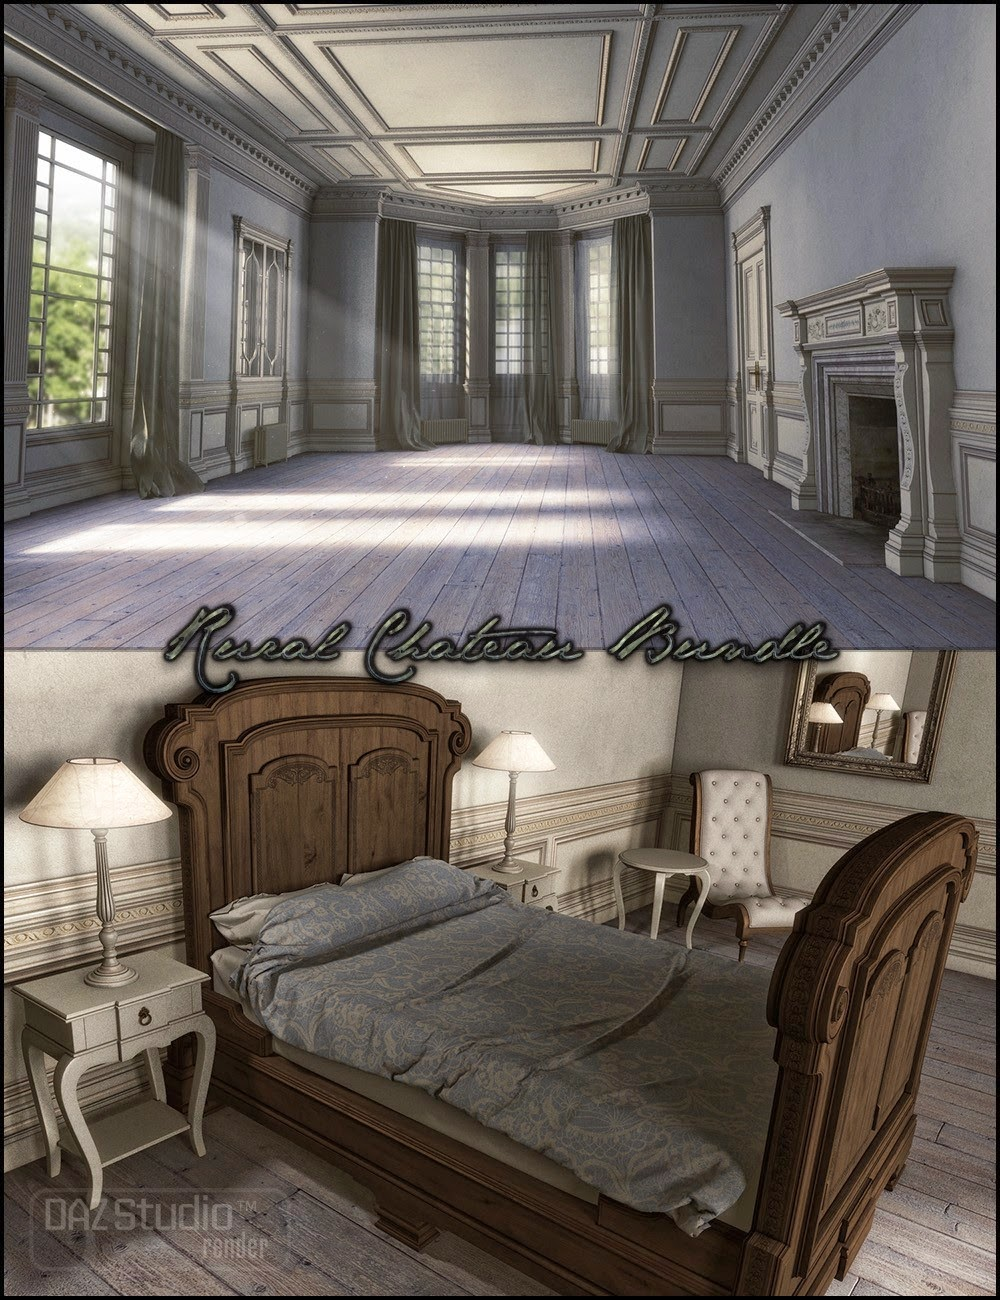 DAZ STUDIO - Rural Chateau Bundle